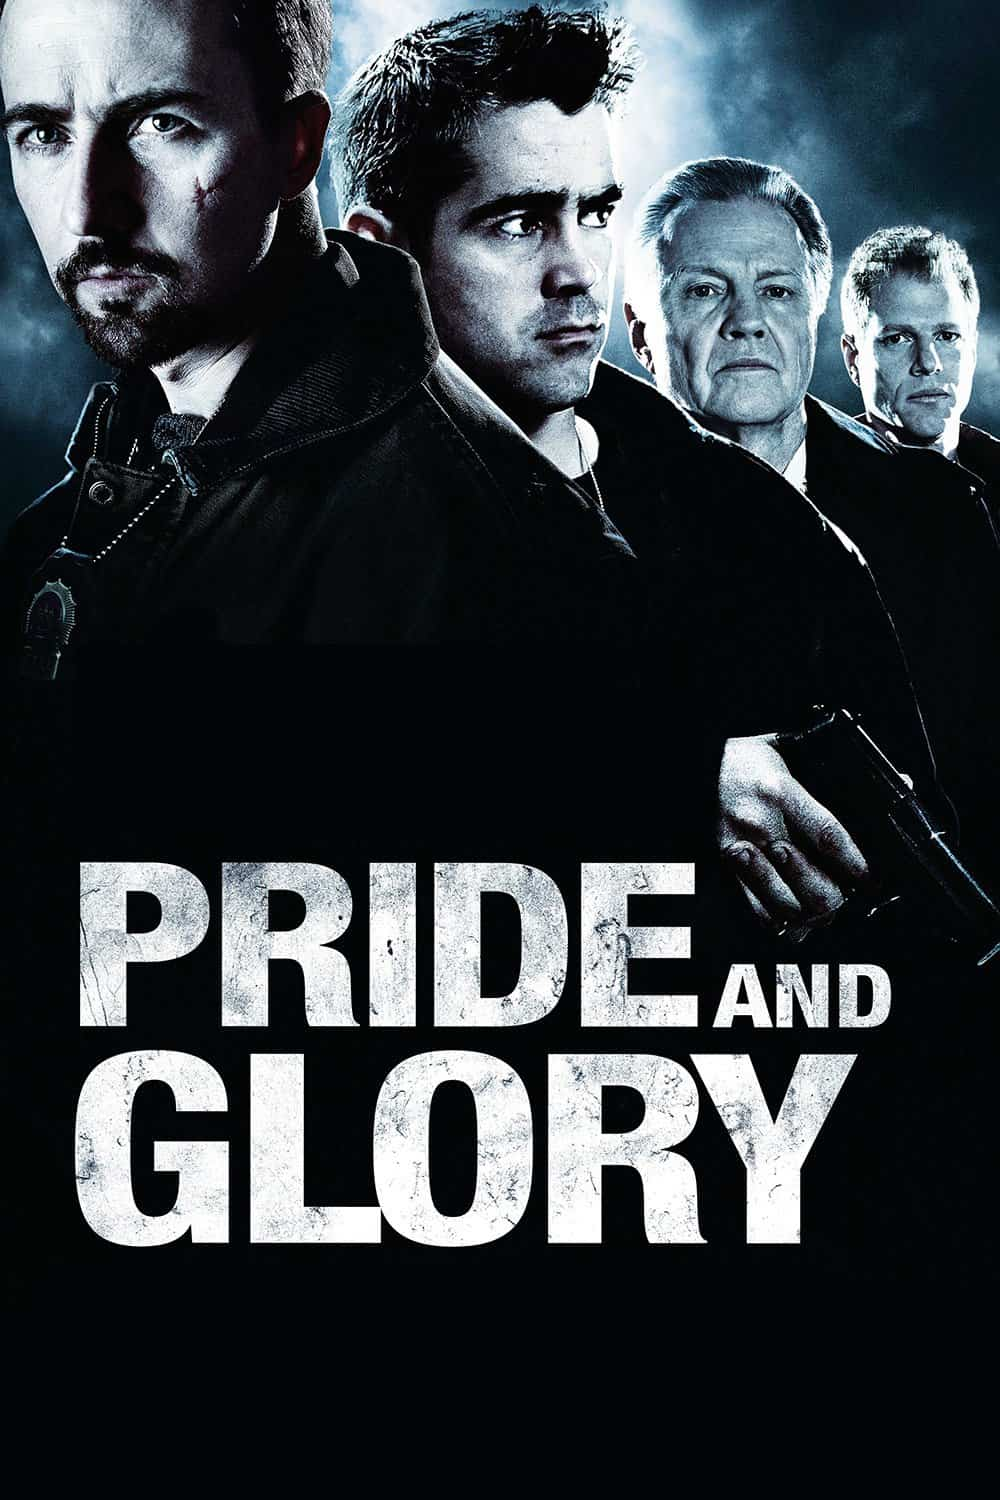 Pride and Glory, 2008